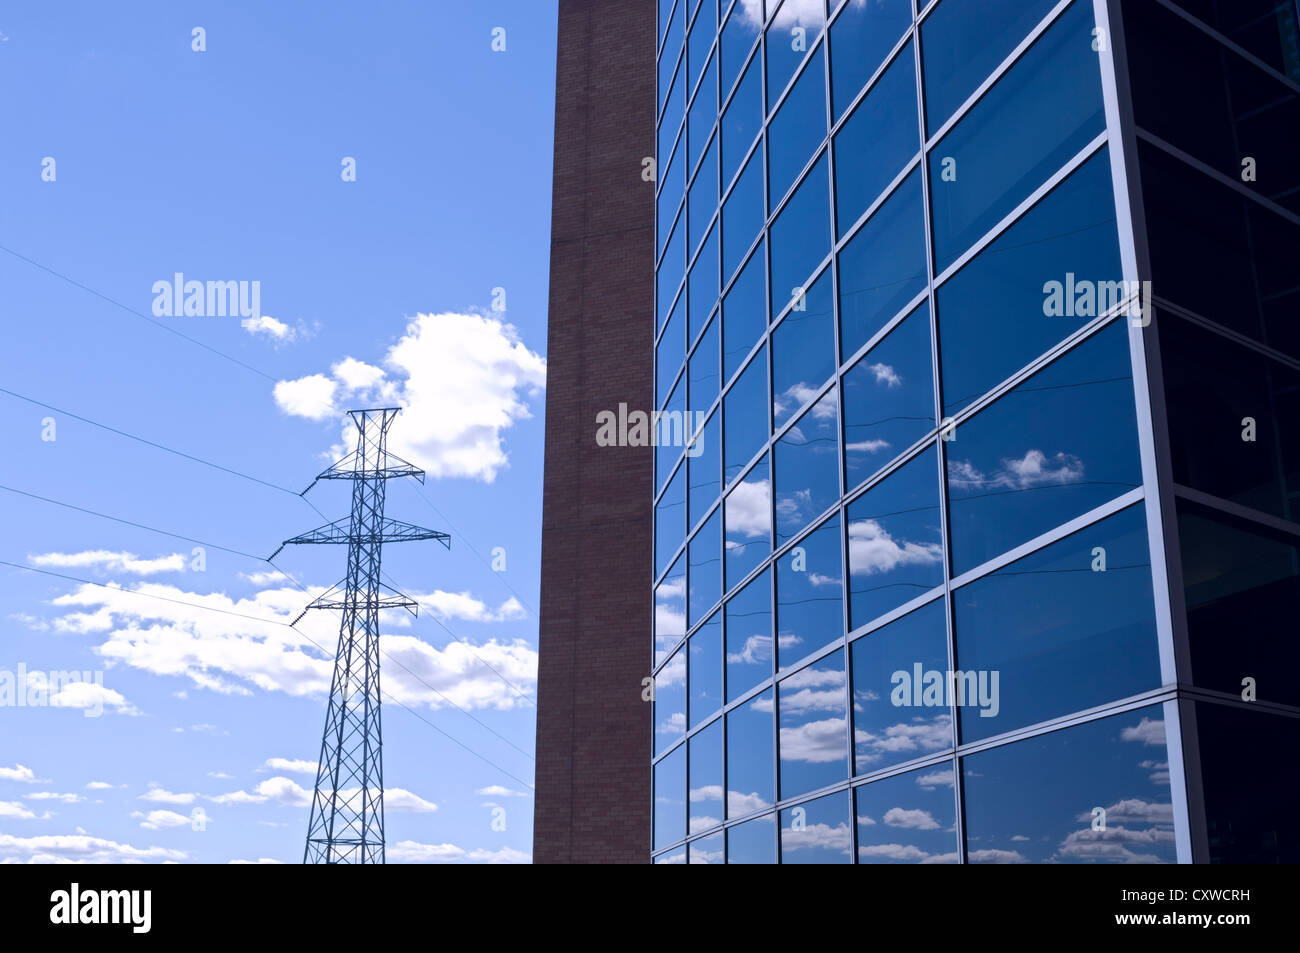 Architecture abstract of windows reflecting clouds and blue sky next